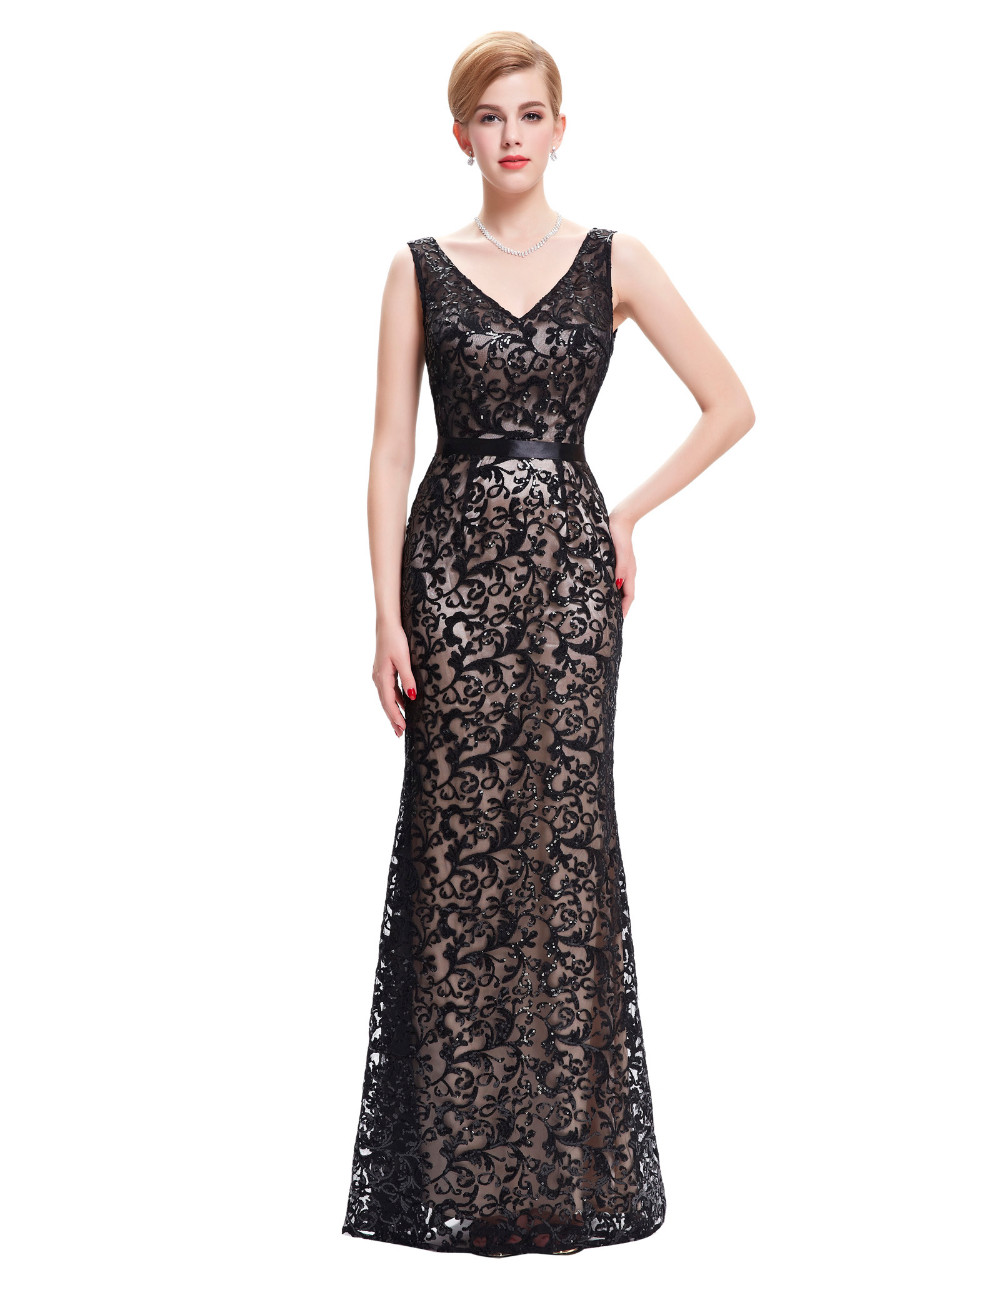 Long Evening Dress Kate Kasin Double V Neck Beaded Evening Gowns Lace Mother of the Bride Dresses Black Formal Prom Dress 0034 7